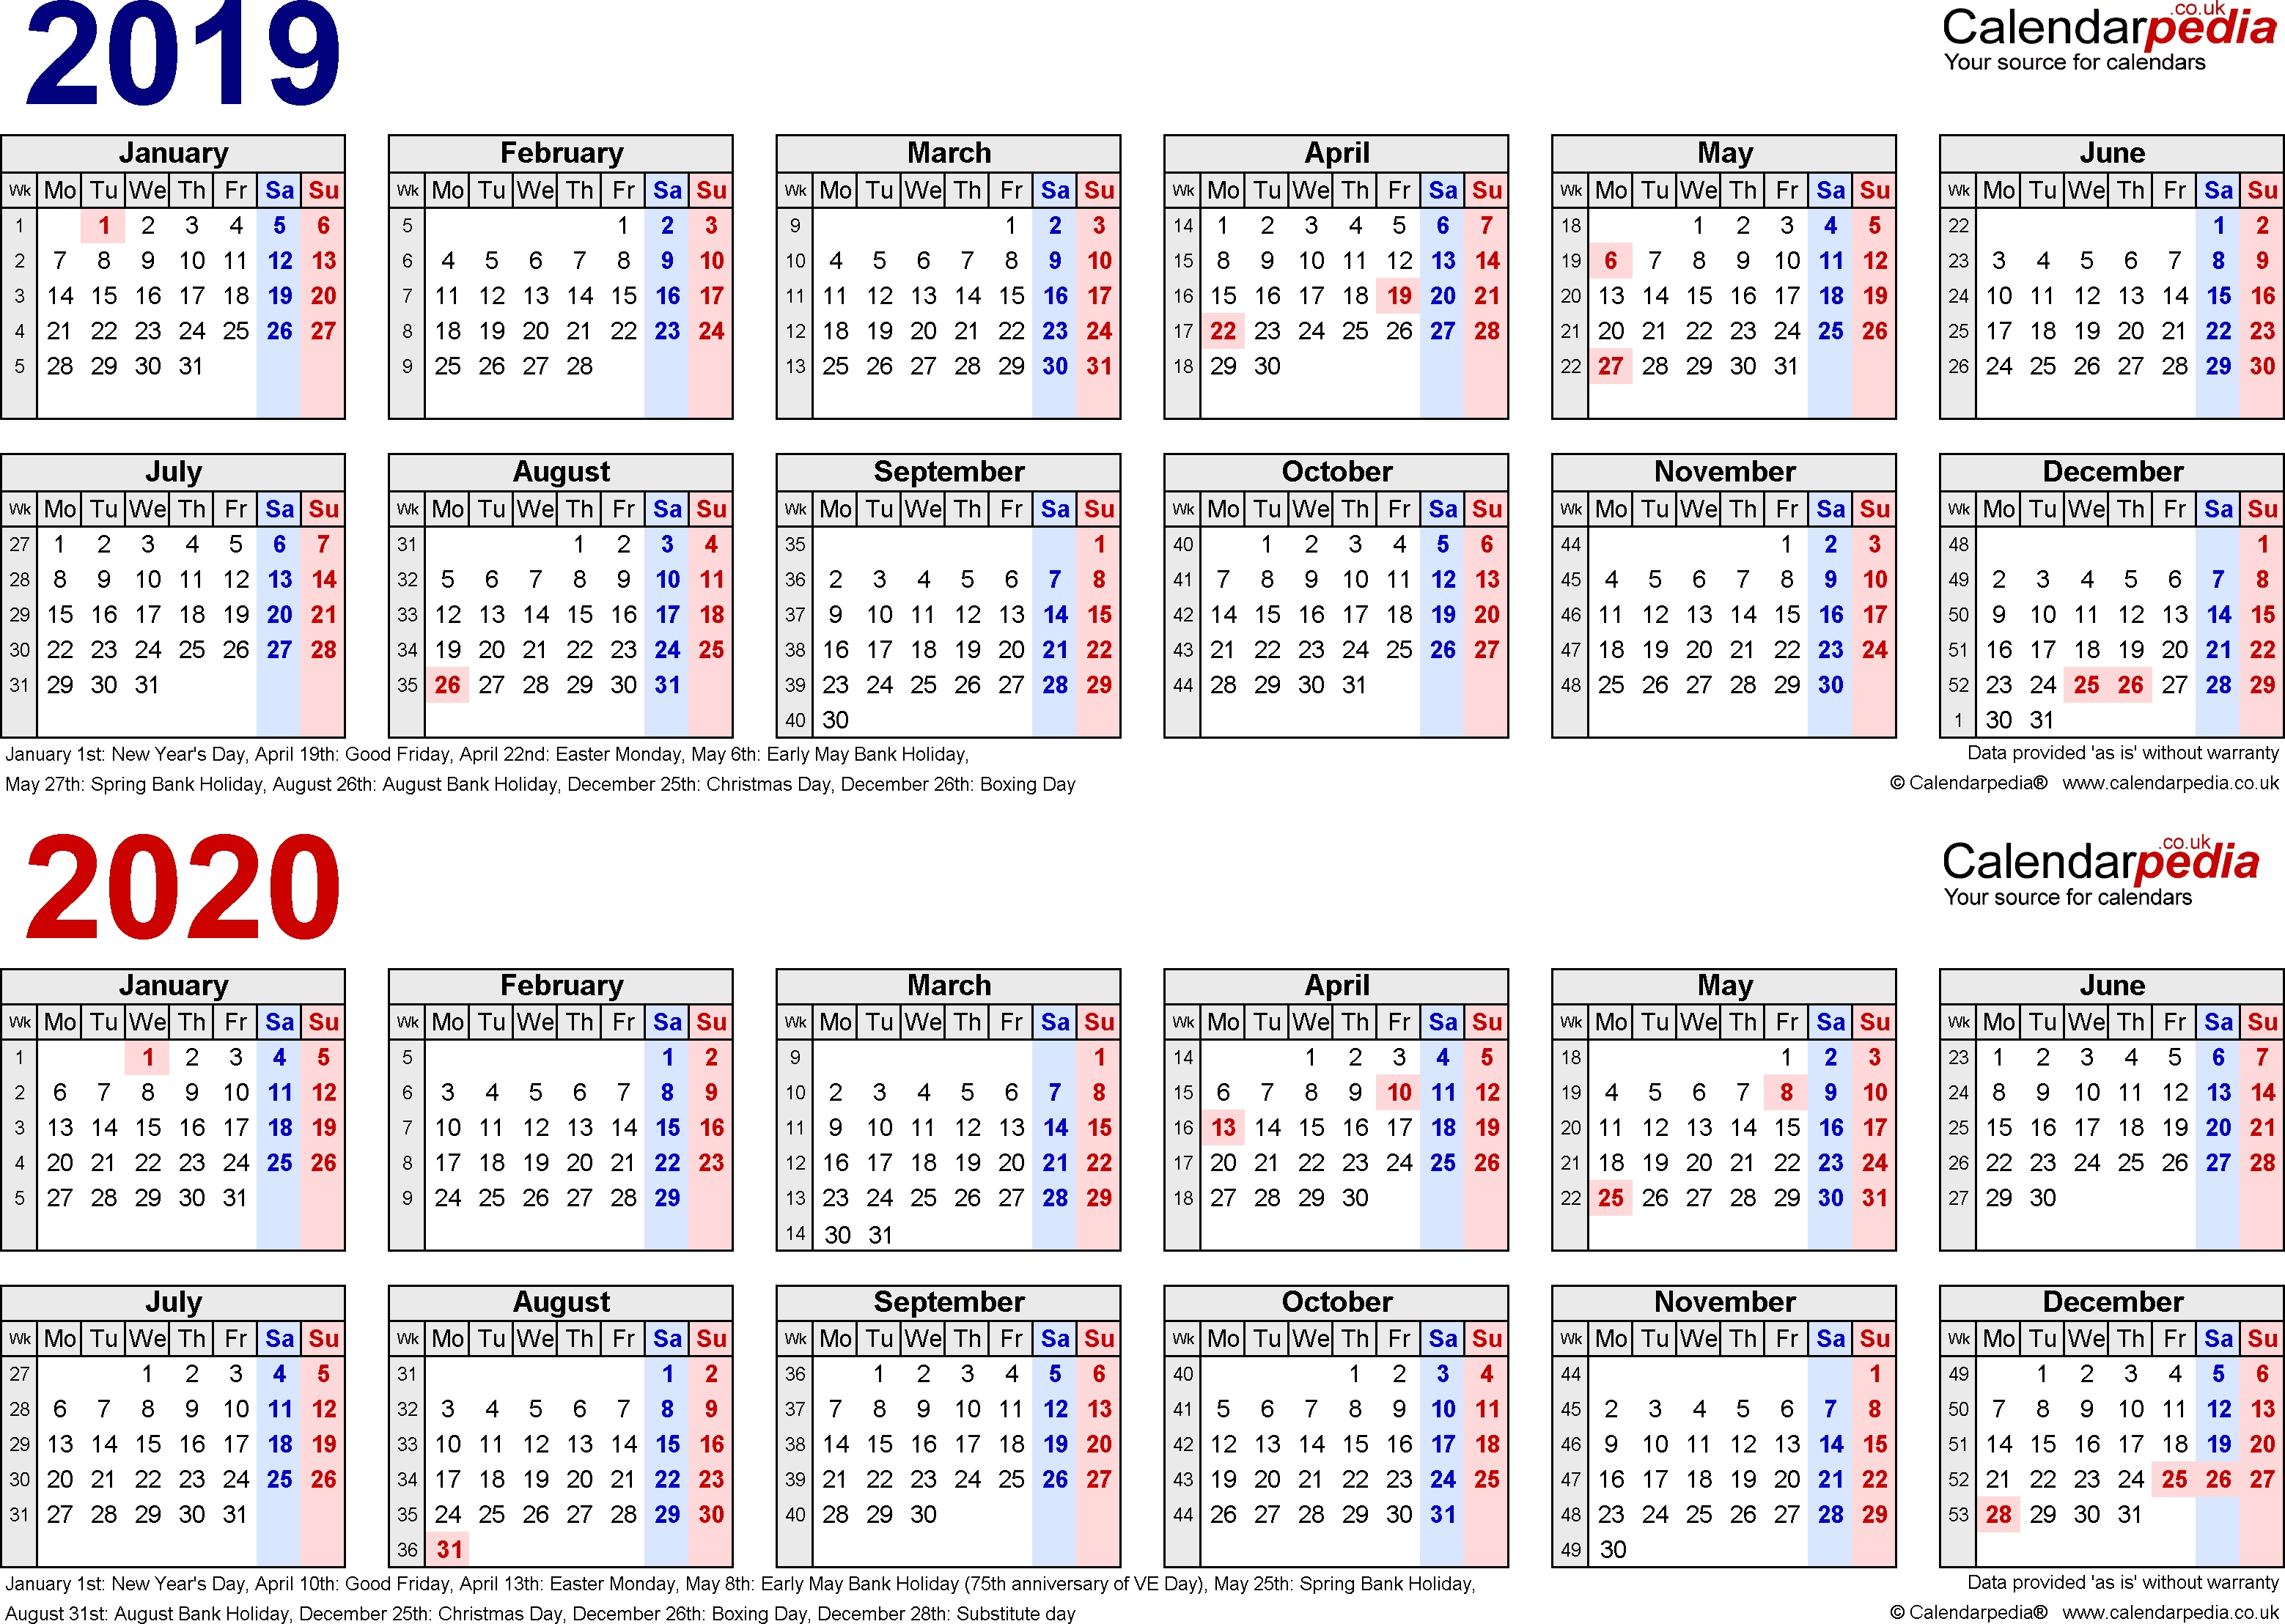 2020 18 Printable Calendar - Colona.rsd7 with regard to Calendar 2019 2020 With Week Number